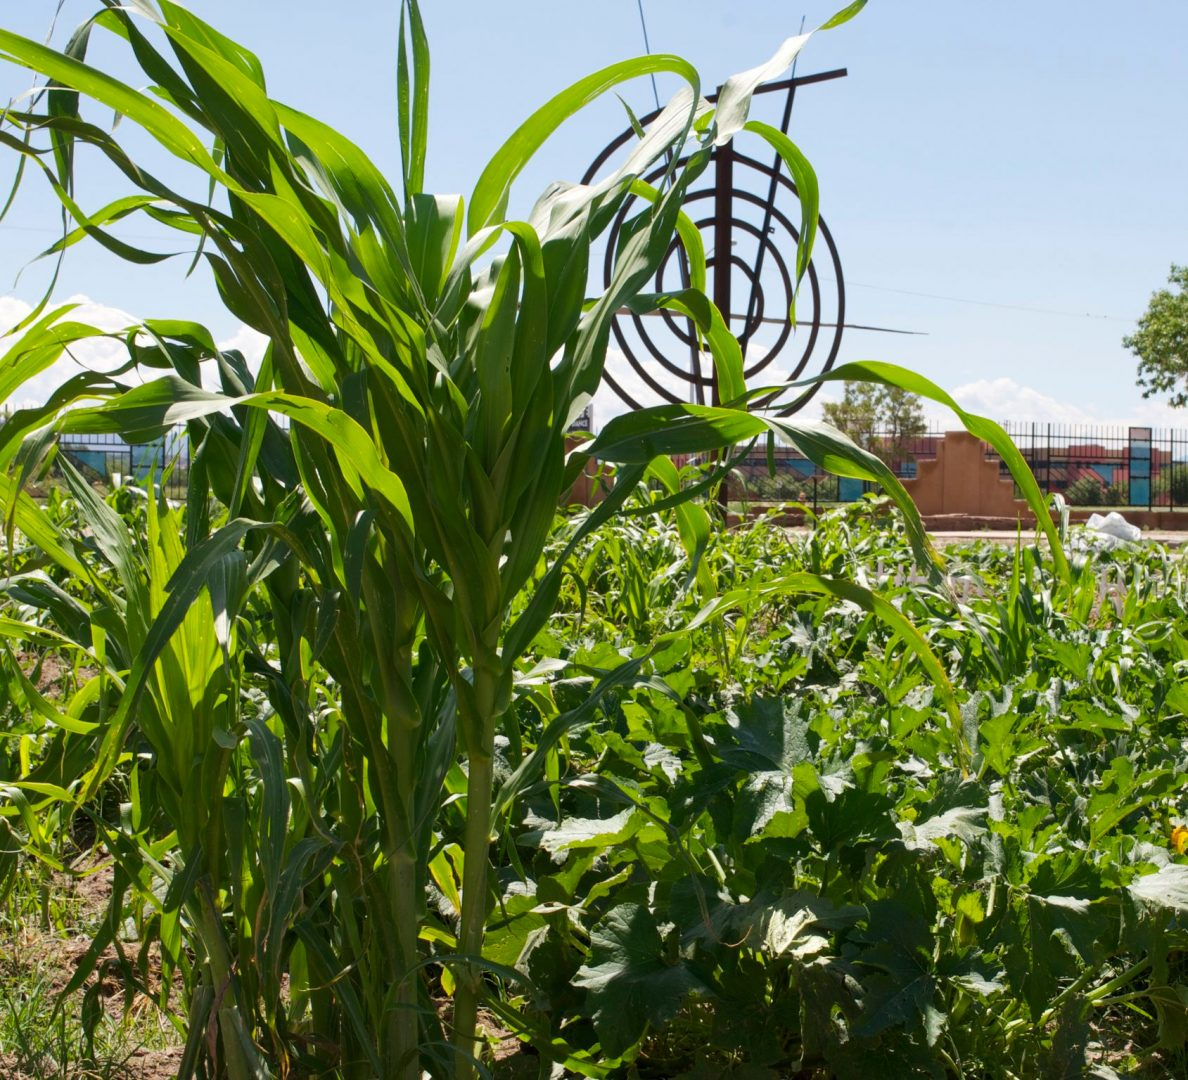 Corn in the Resilience Garden at the Indian Pueblo Cultural Center